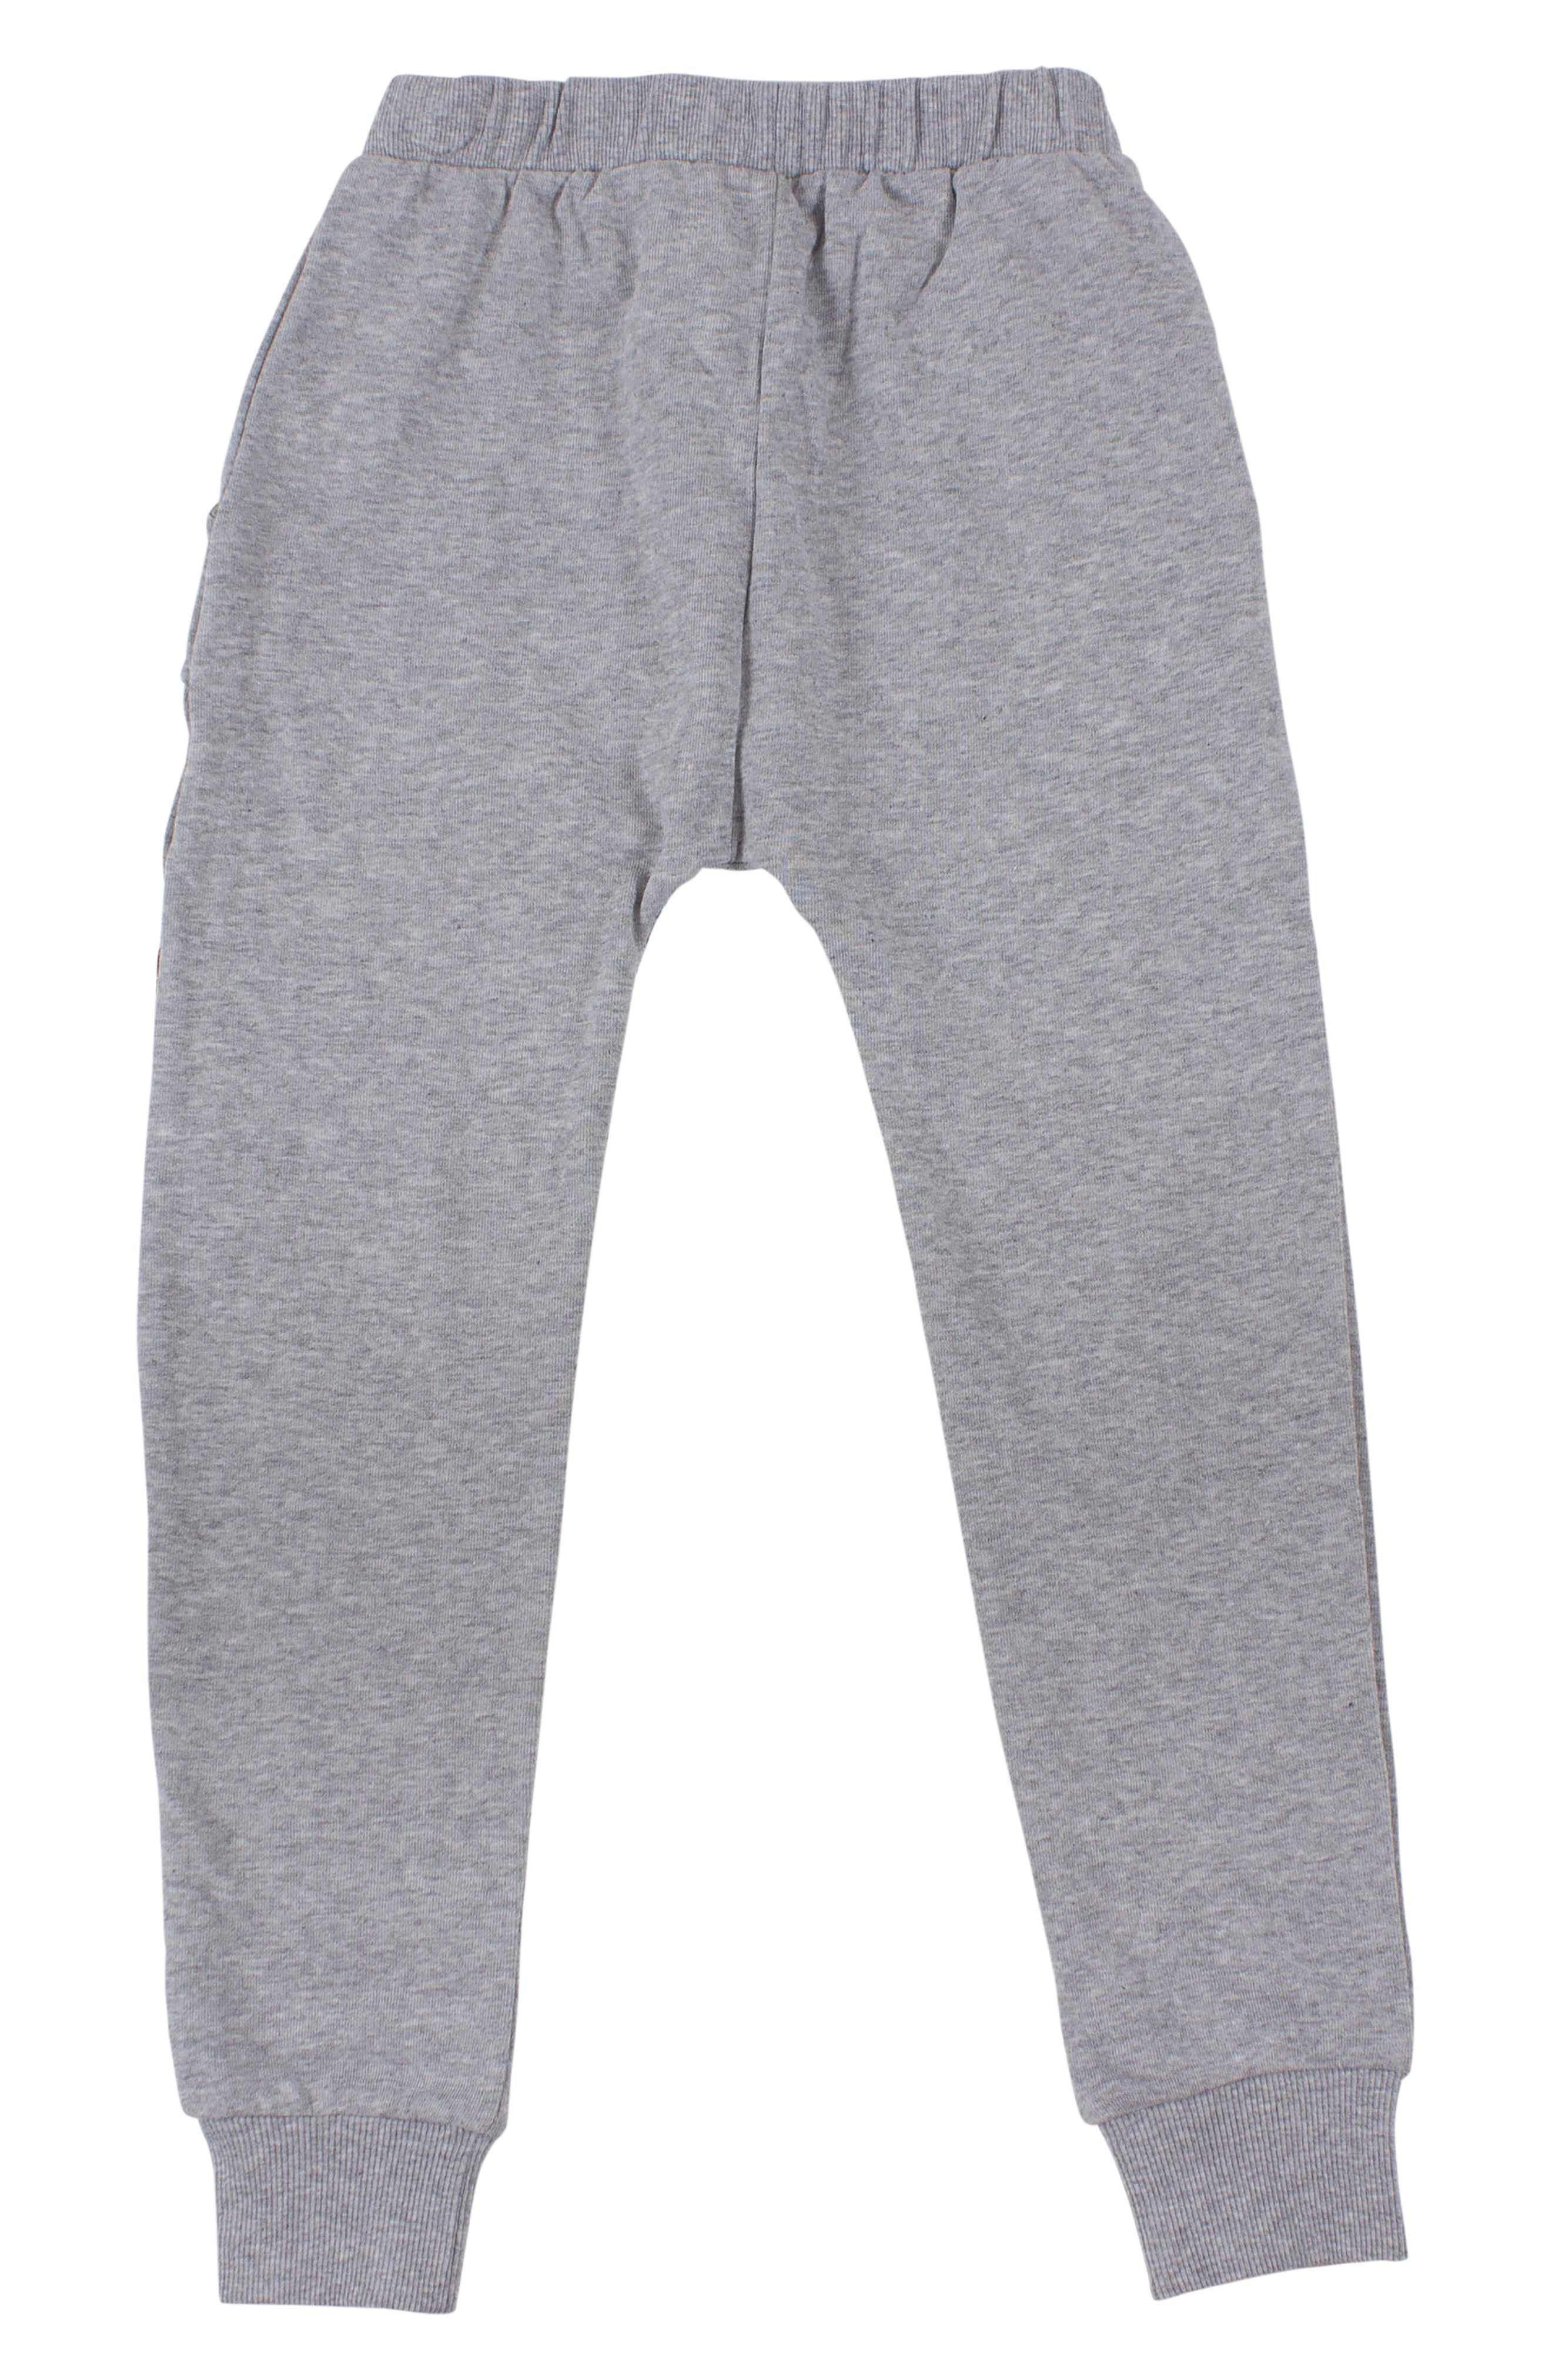 Peace Sweatpants,                             Alternate thumbnail 2, color,                             020